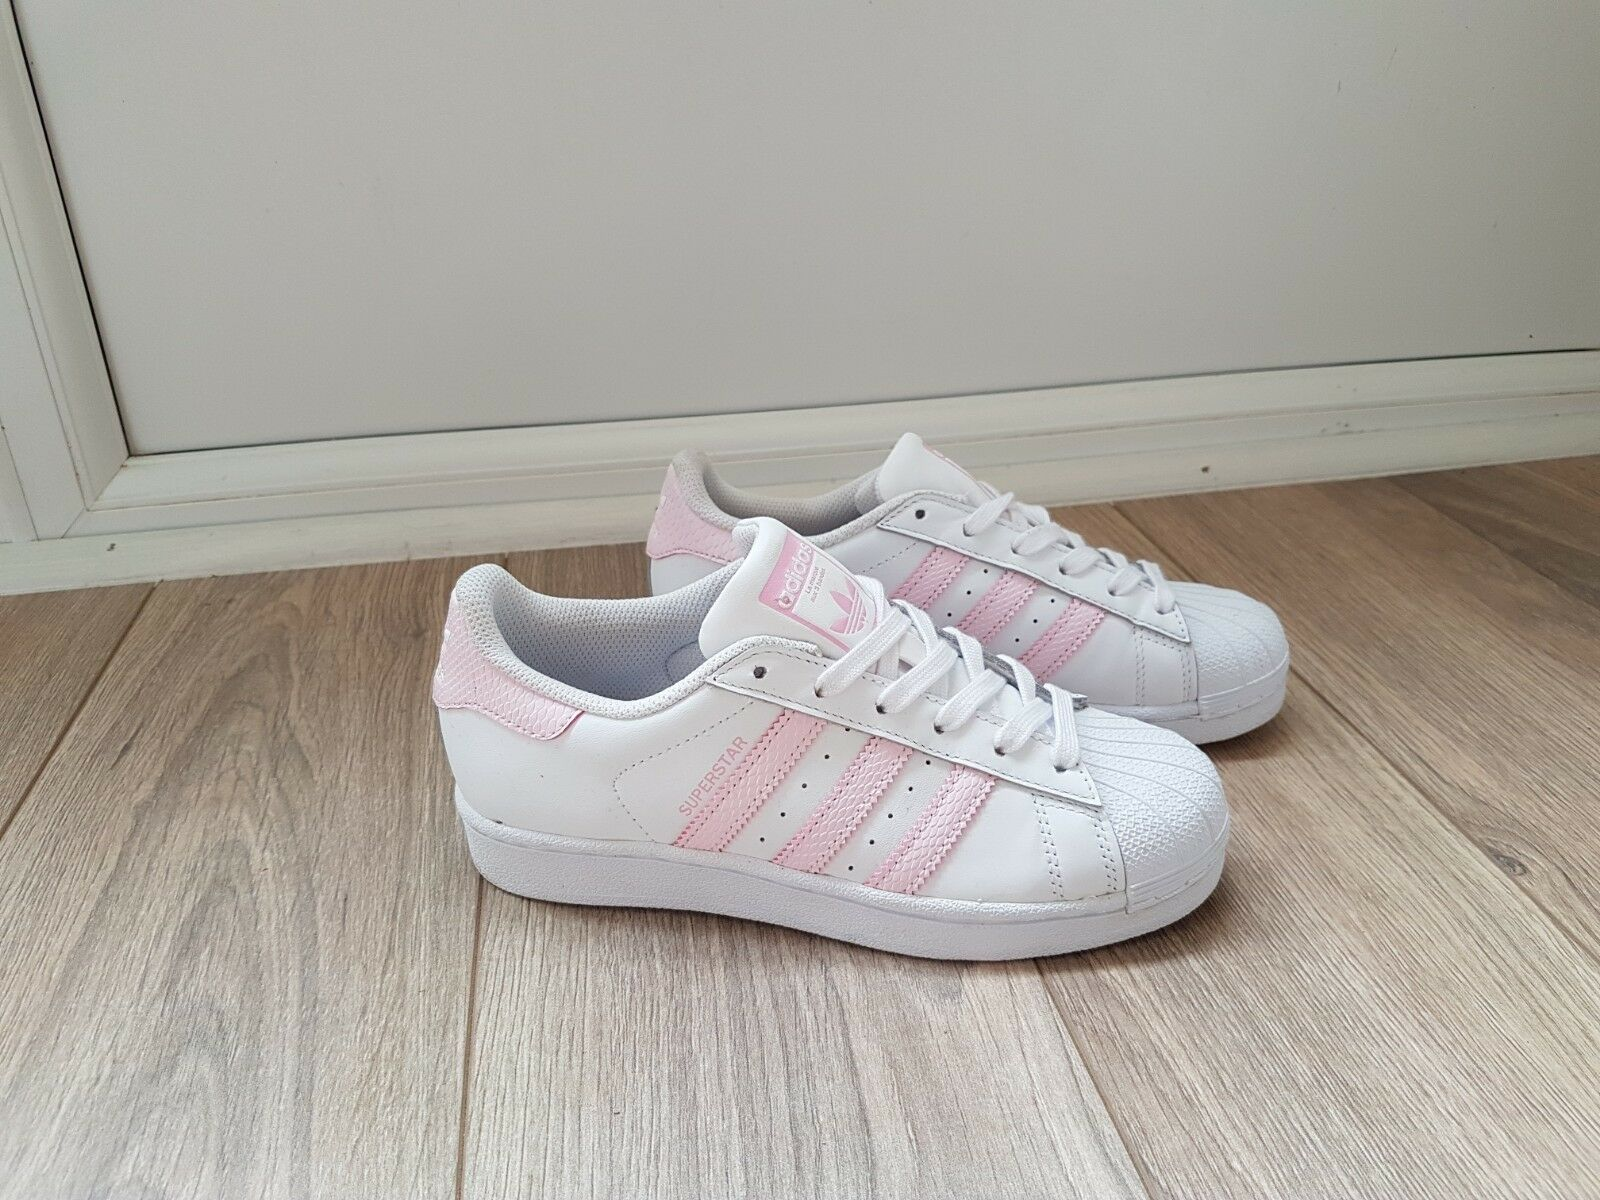 Adidas SUPERSTAR women's trainers size 3 The most popular shoes for men and women